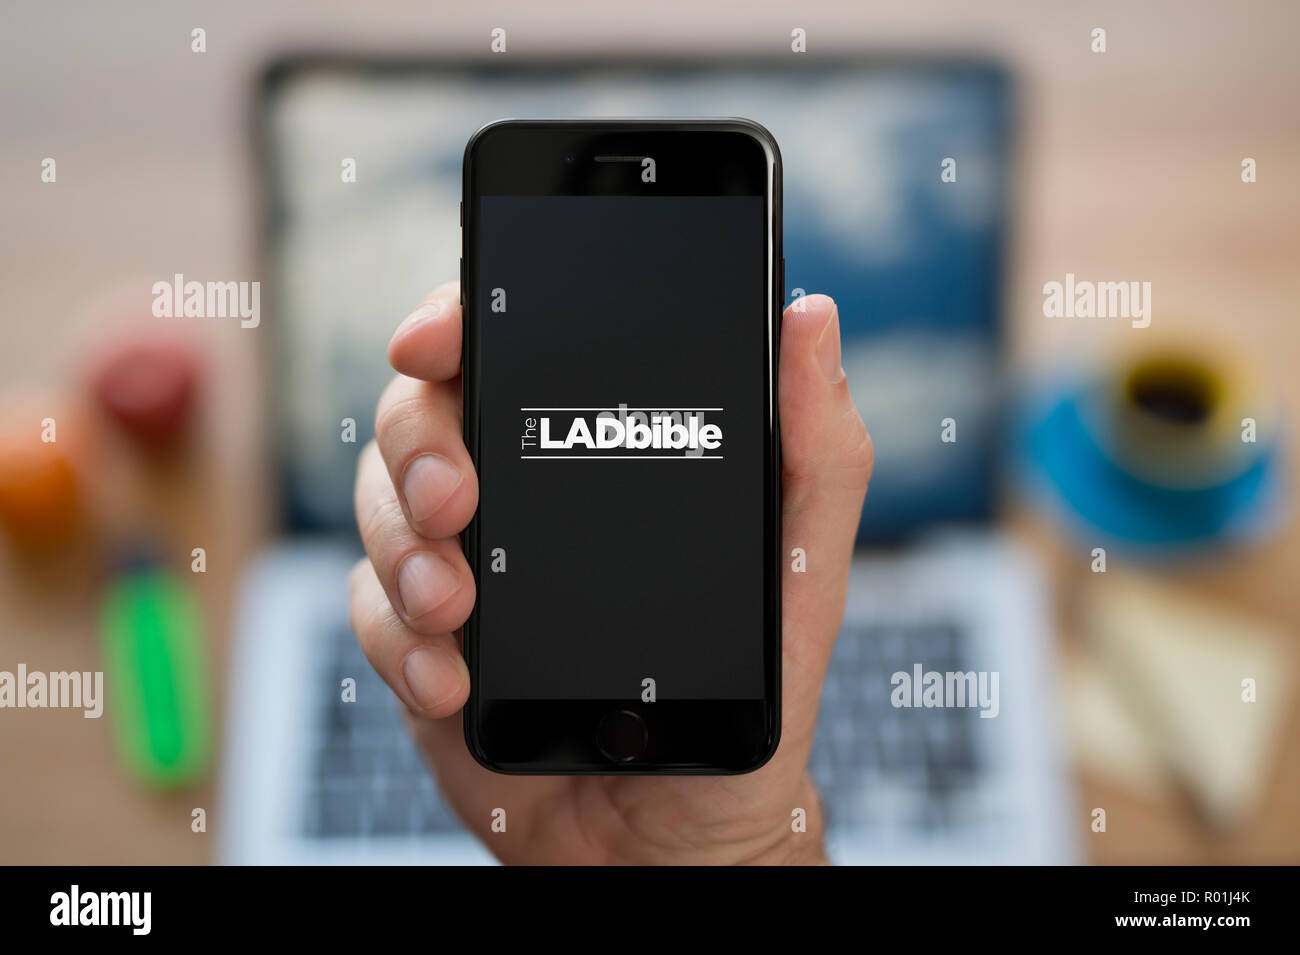 A man looks at his iPhone which displays the Lad bible logo, while sat at his computer desk (Editorial use only). Stock Photo